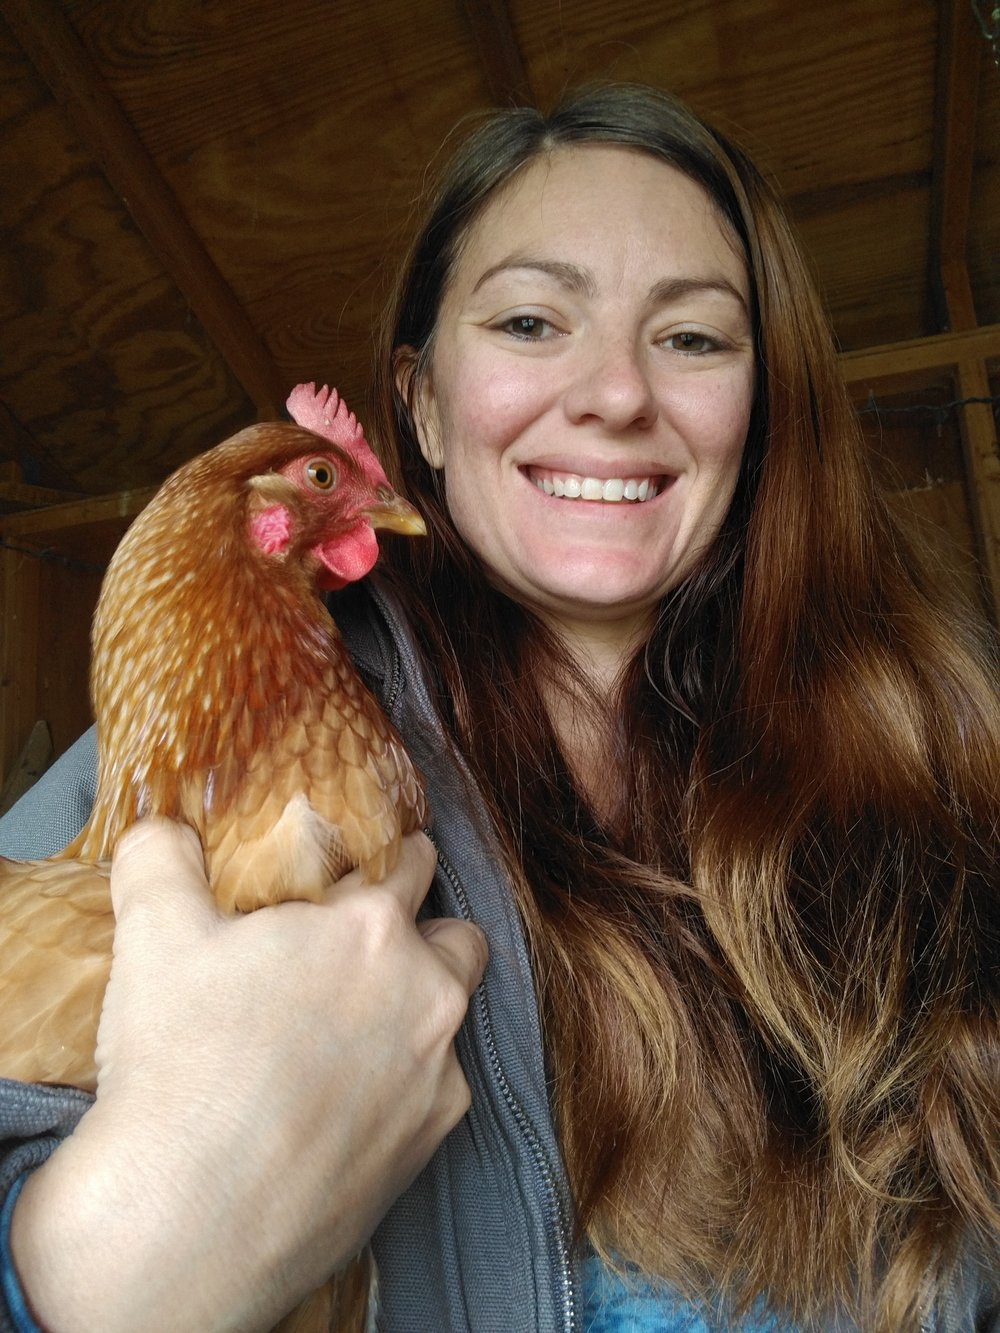 My chickens let me hold them when I bring them presents. J/K, you can see how annoyed Penny is with me for picking her up!